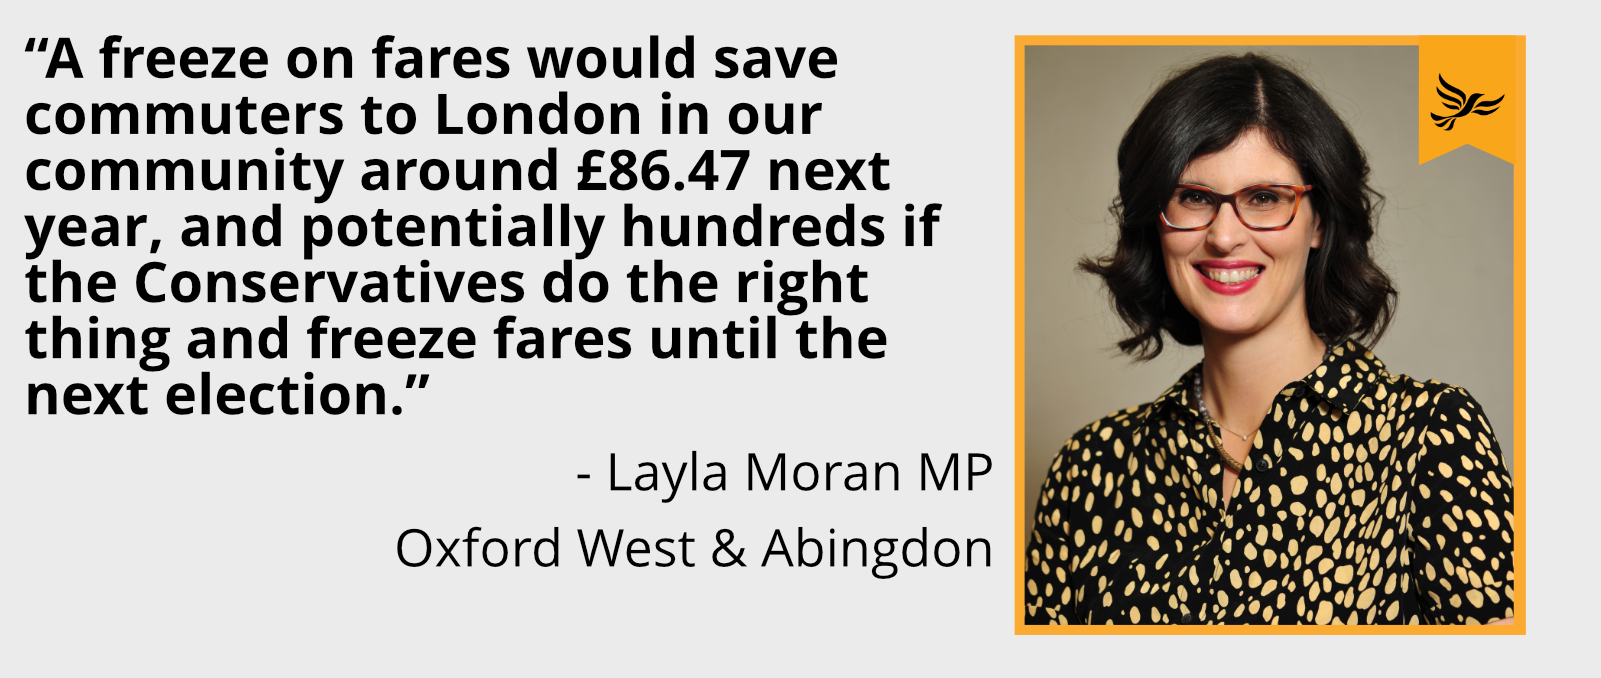 A freeze on fares would save commuters to London in our community around £86.47 next year, and potentially hundreds if the Conservatives do the right thing and freeze fares until the next election.